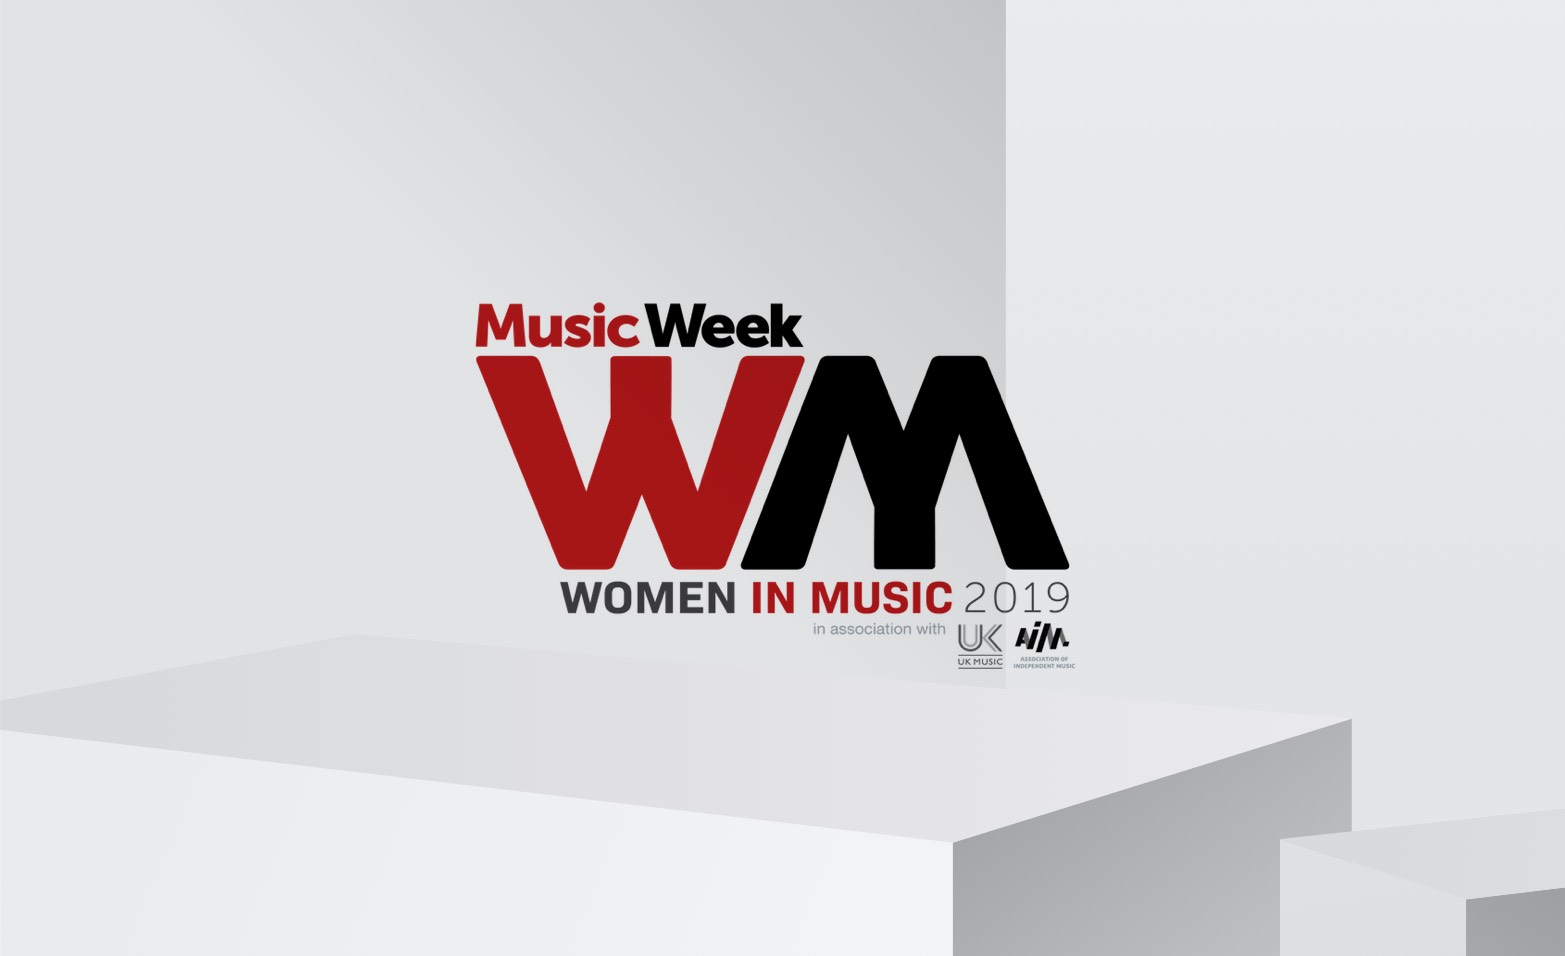 Women in Music Week